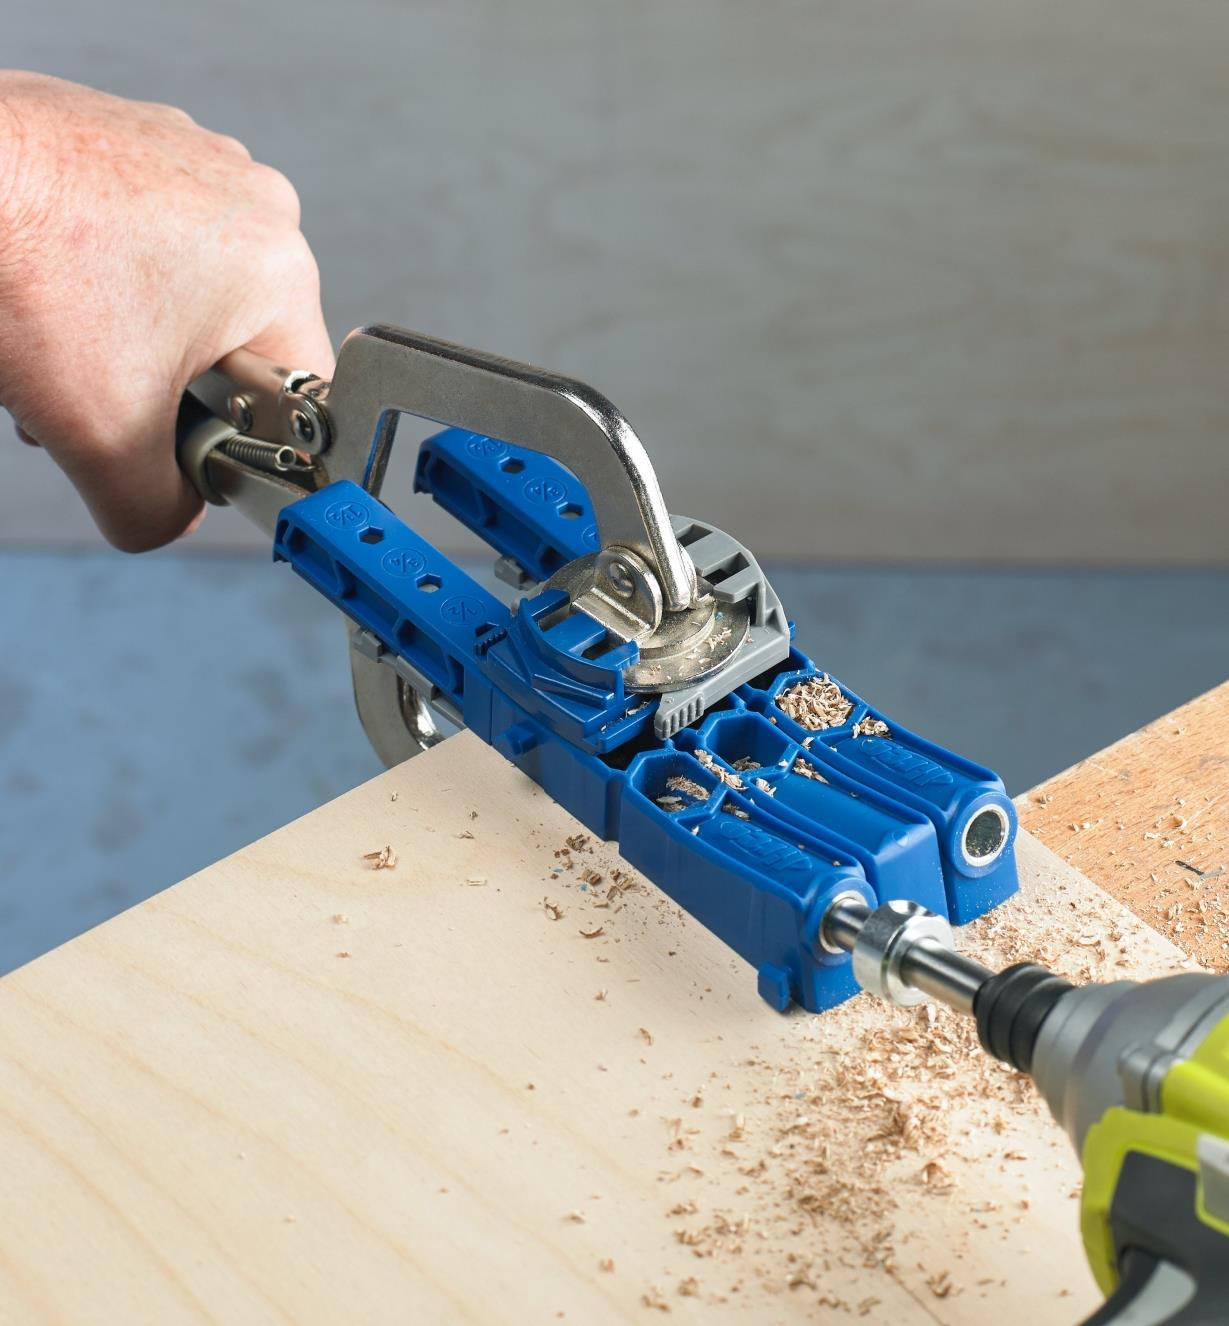 A Kreg 320 pocket-hole kit being used to drill pocket holes in a piece of wood